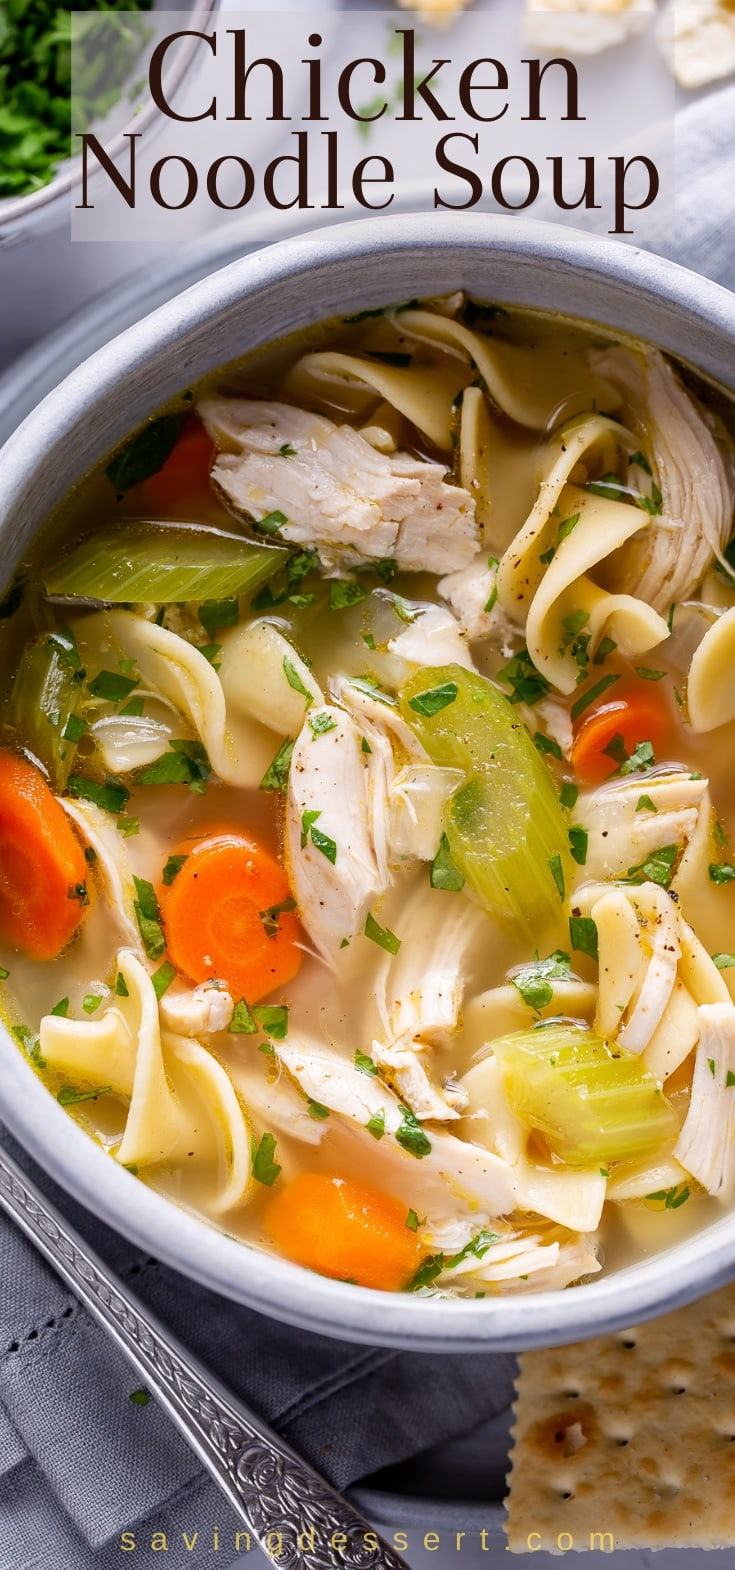 Bowl of chicken noodle soup with carrots, onions and celery